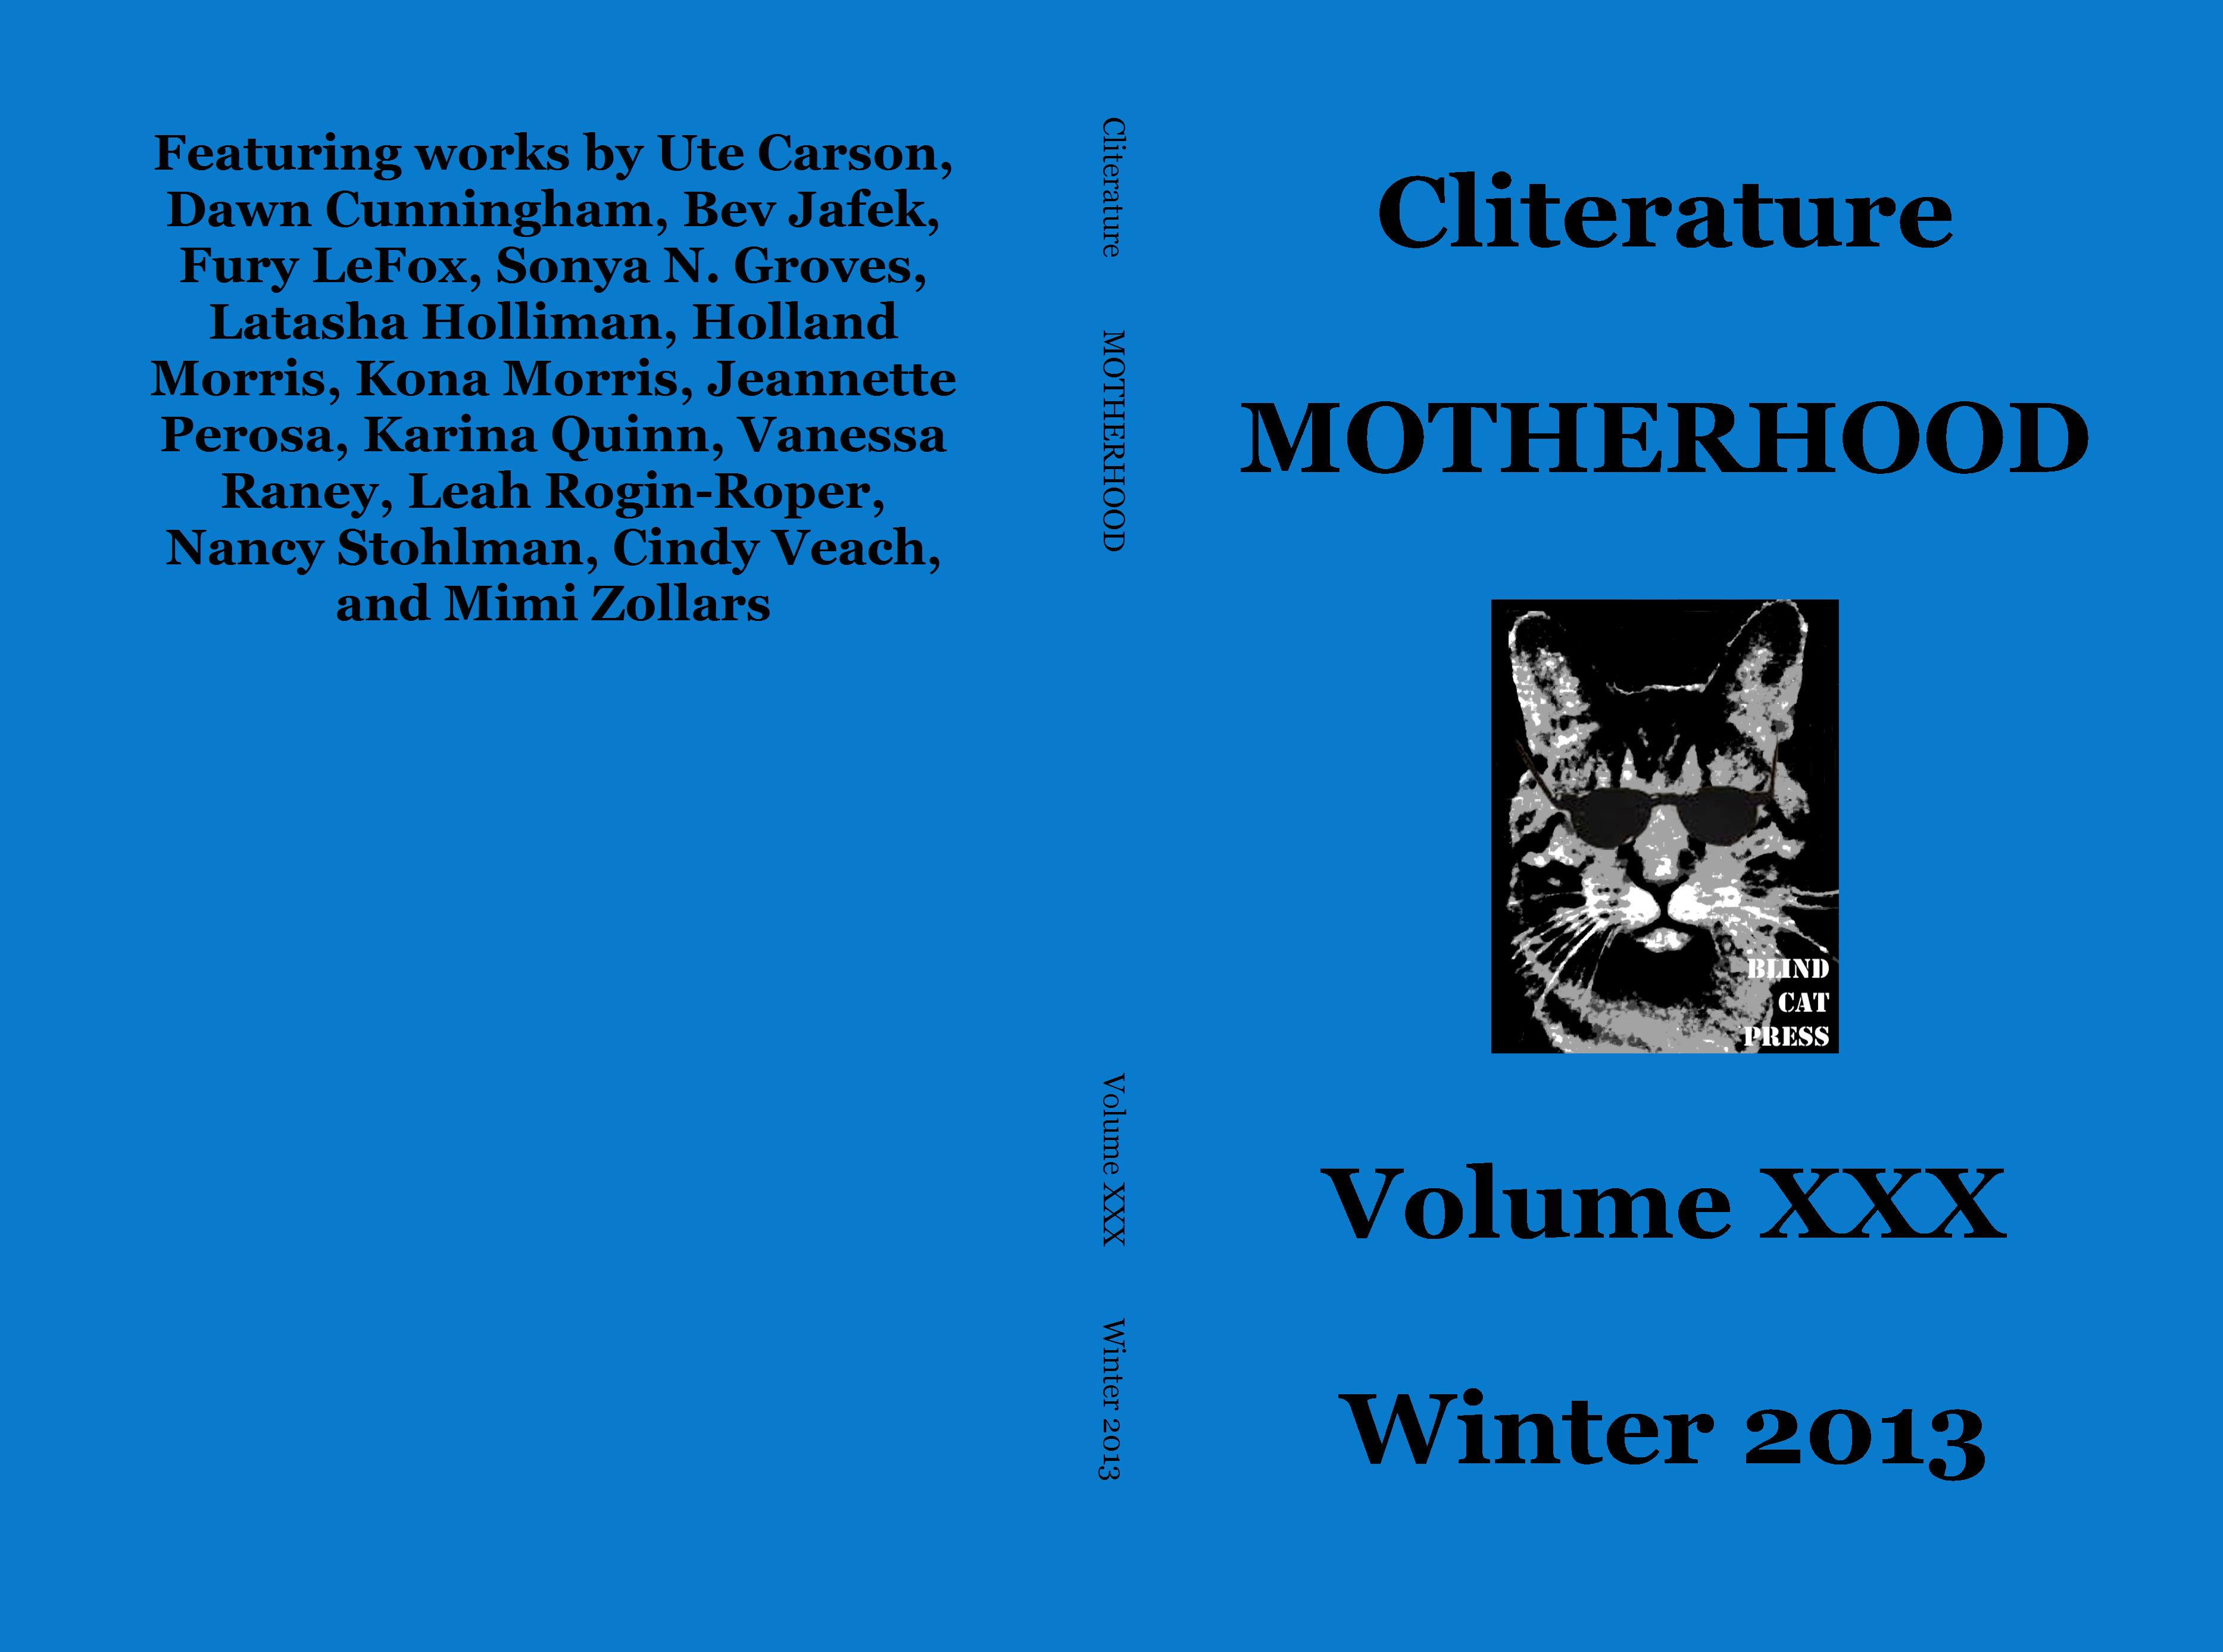 Cliterature MOTHERHOOD cover image